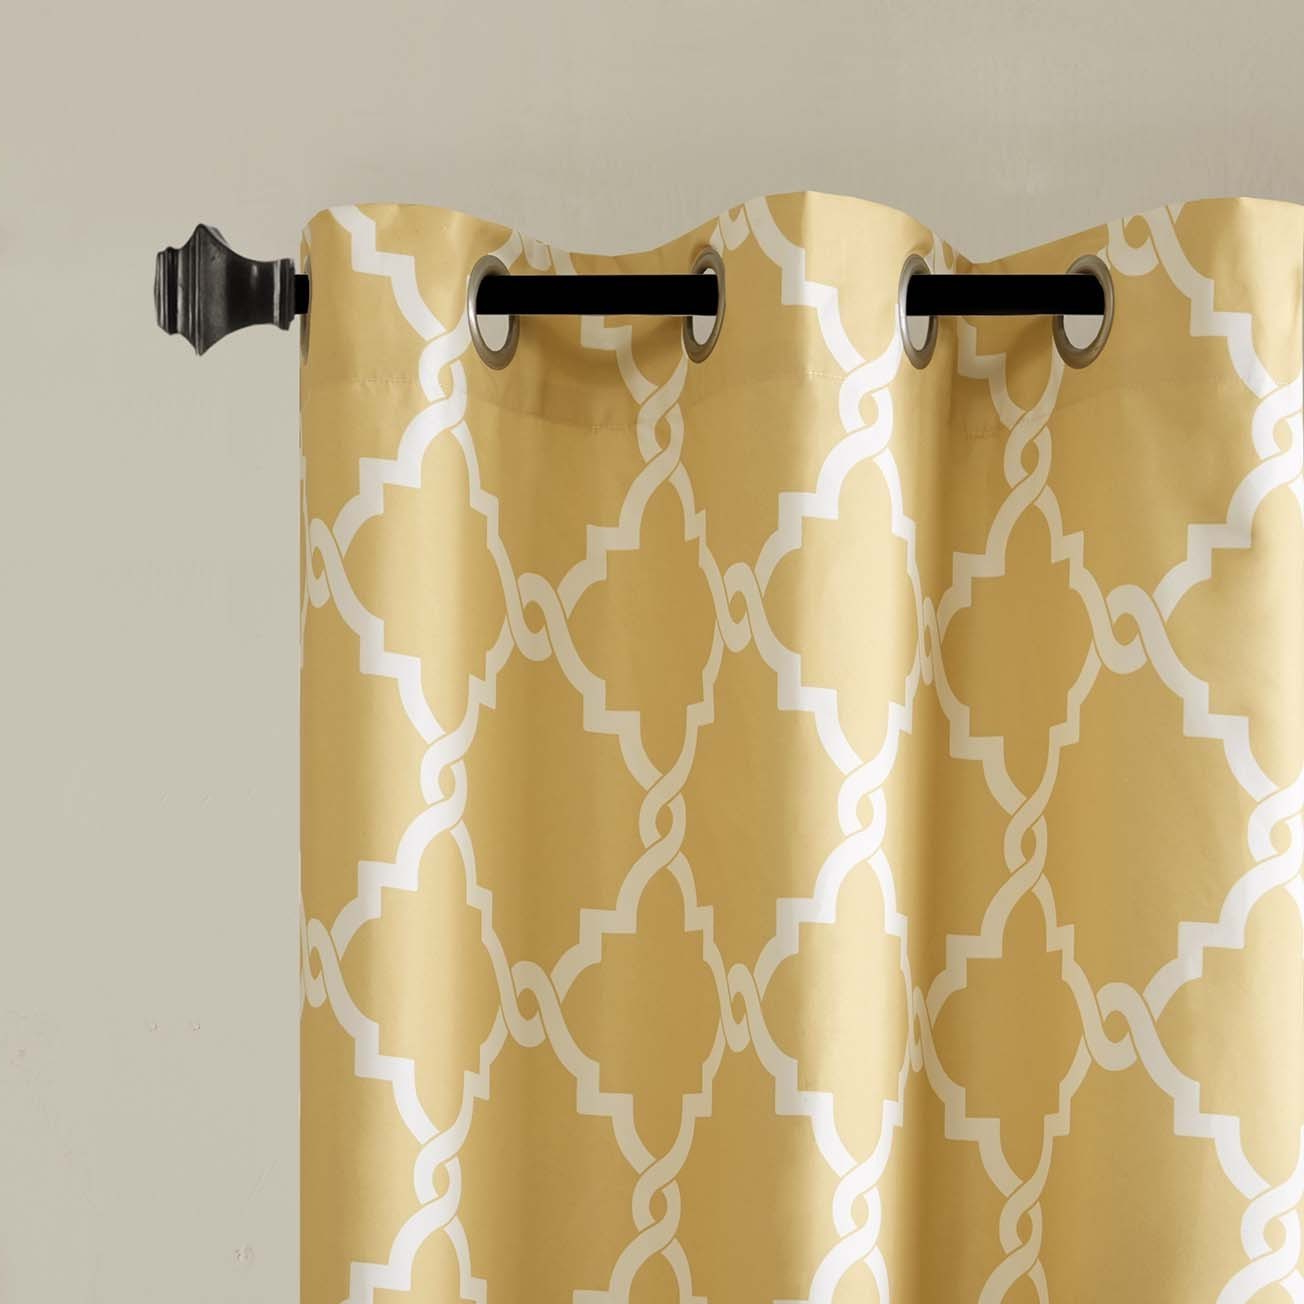 Best And Newest Essentials Almaden Fretwork Printed Grommet Top Curtain Panel Pairs With Madison Park Essentials Almaden Fretwork Printed Grommet Top Curtain Panel Pair (View 8 of 20)